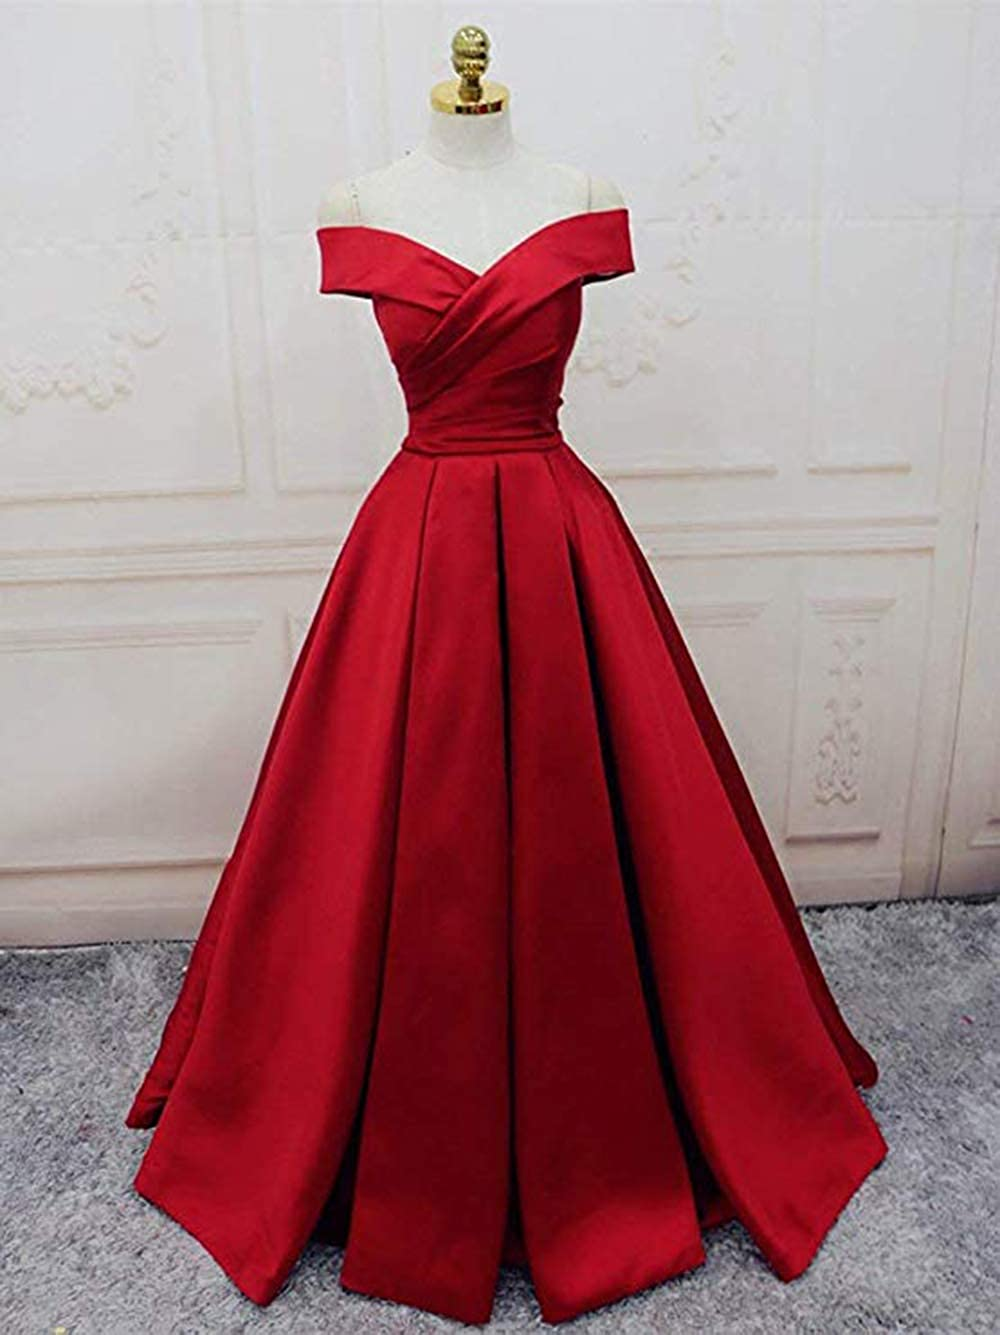 Ri Yun Womens Off The Shoulder Pleated Prom Dresses Long 2019 A-Line Satin Formal  Evening Ball Gowns with Pockets at Amazon Women s Clothing store  9ffcd6b89